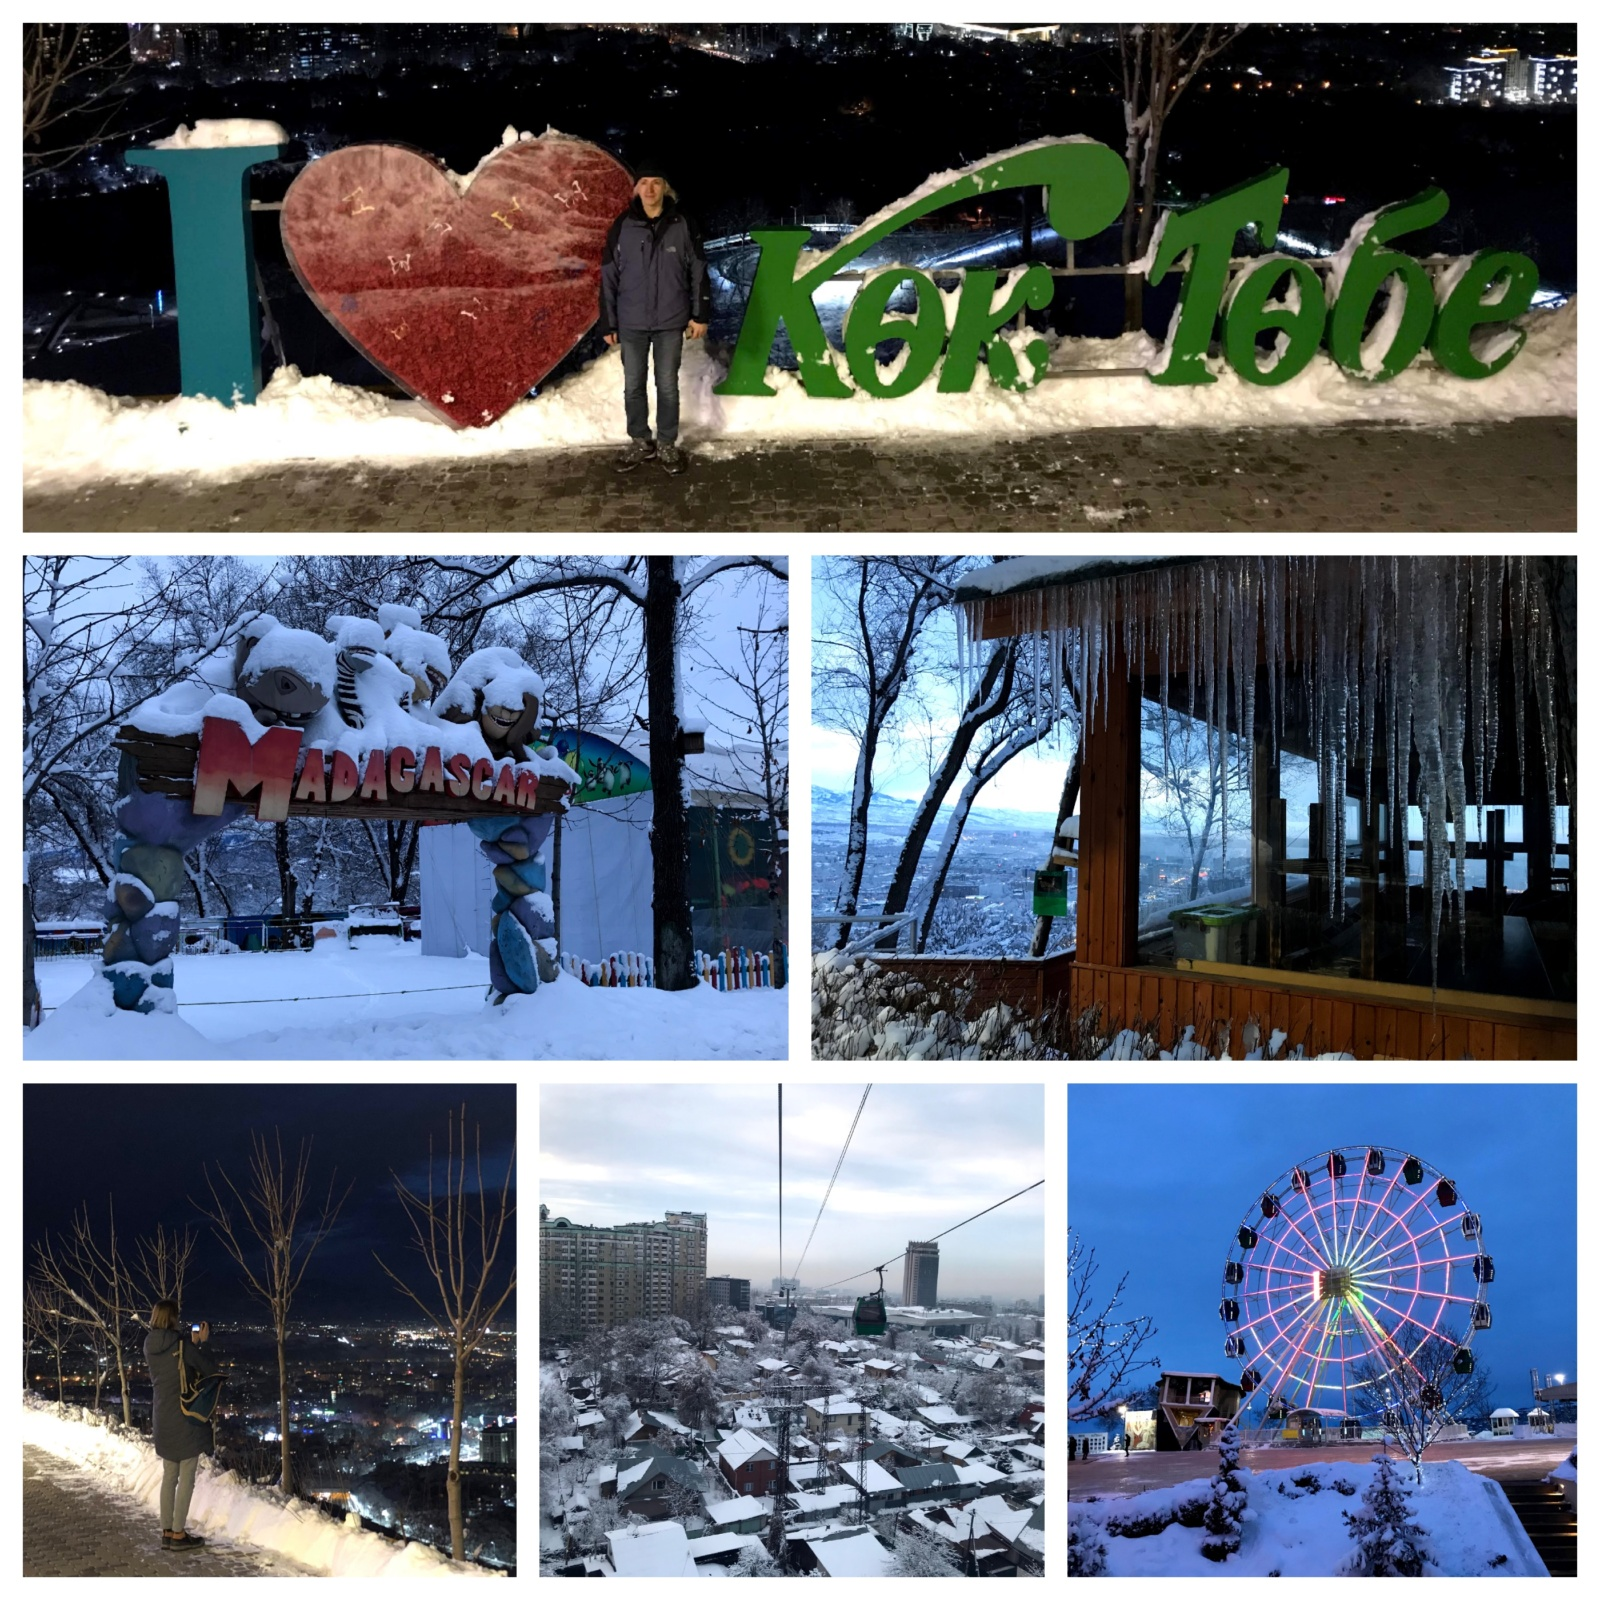 Pictures of the Feris Wheel and some attractions of koktobe